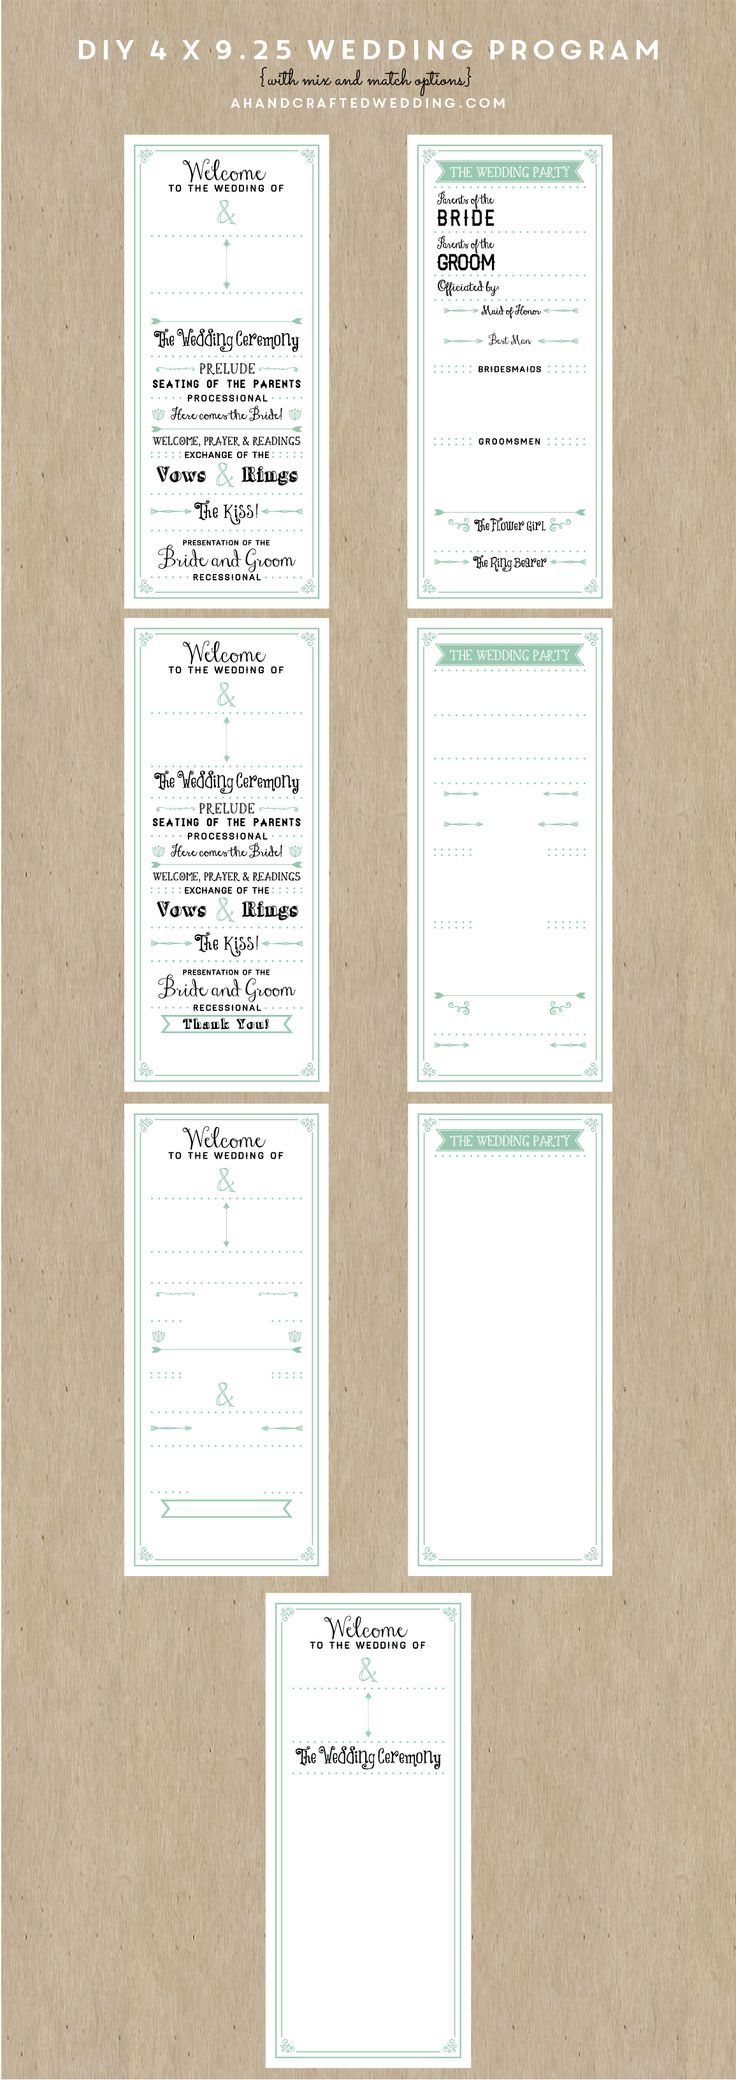 Free Wedding Fonts For Your Diy Invitations: 17 Best Ideas About Wedding Program Templates On Pinterest